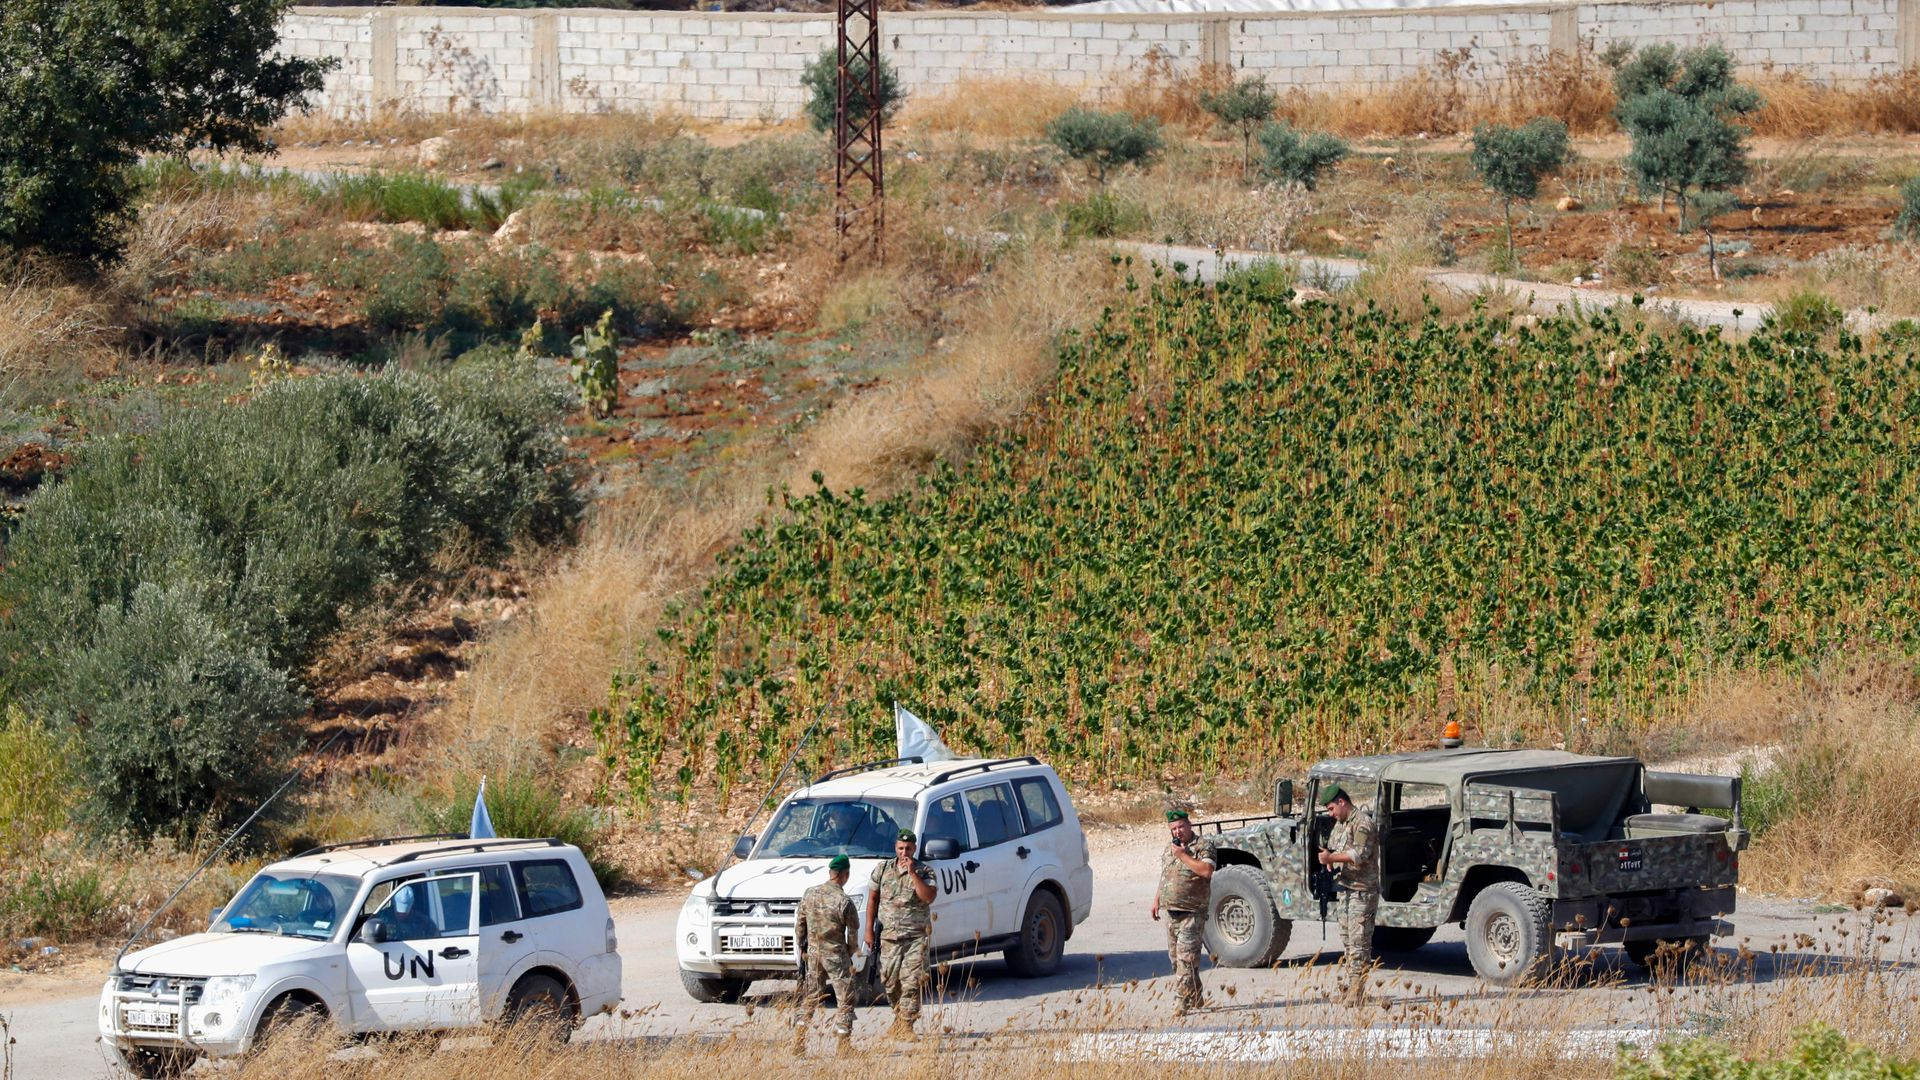 The Lebanese army and United Nations Interim Forces in Lebanon patrolling in the Lebanese village of Aitaroun along the border with Israel.